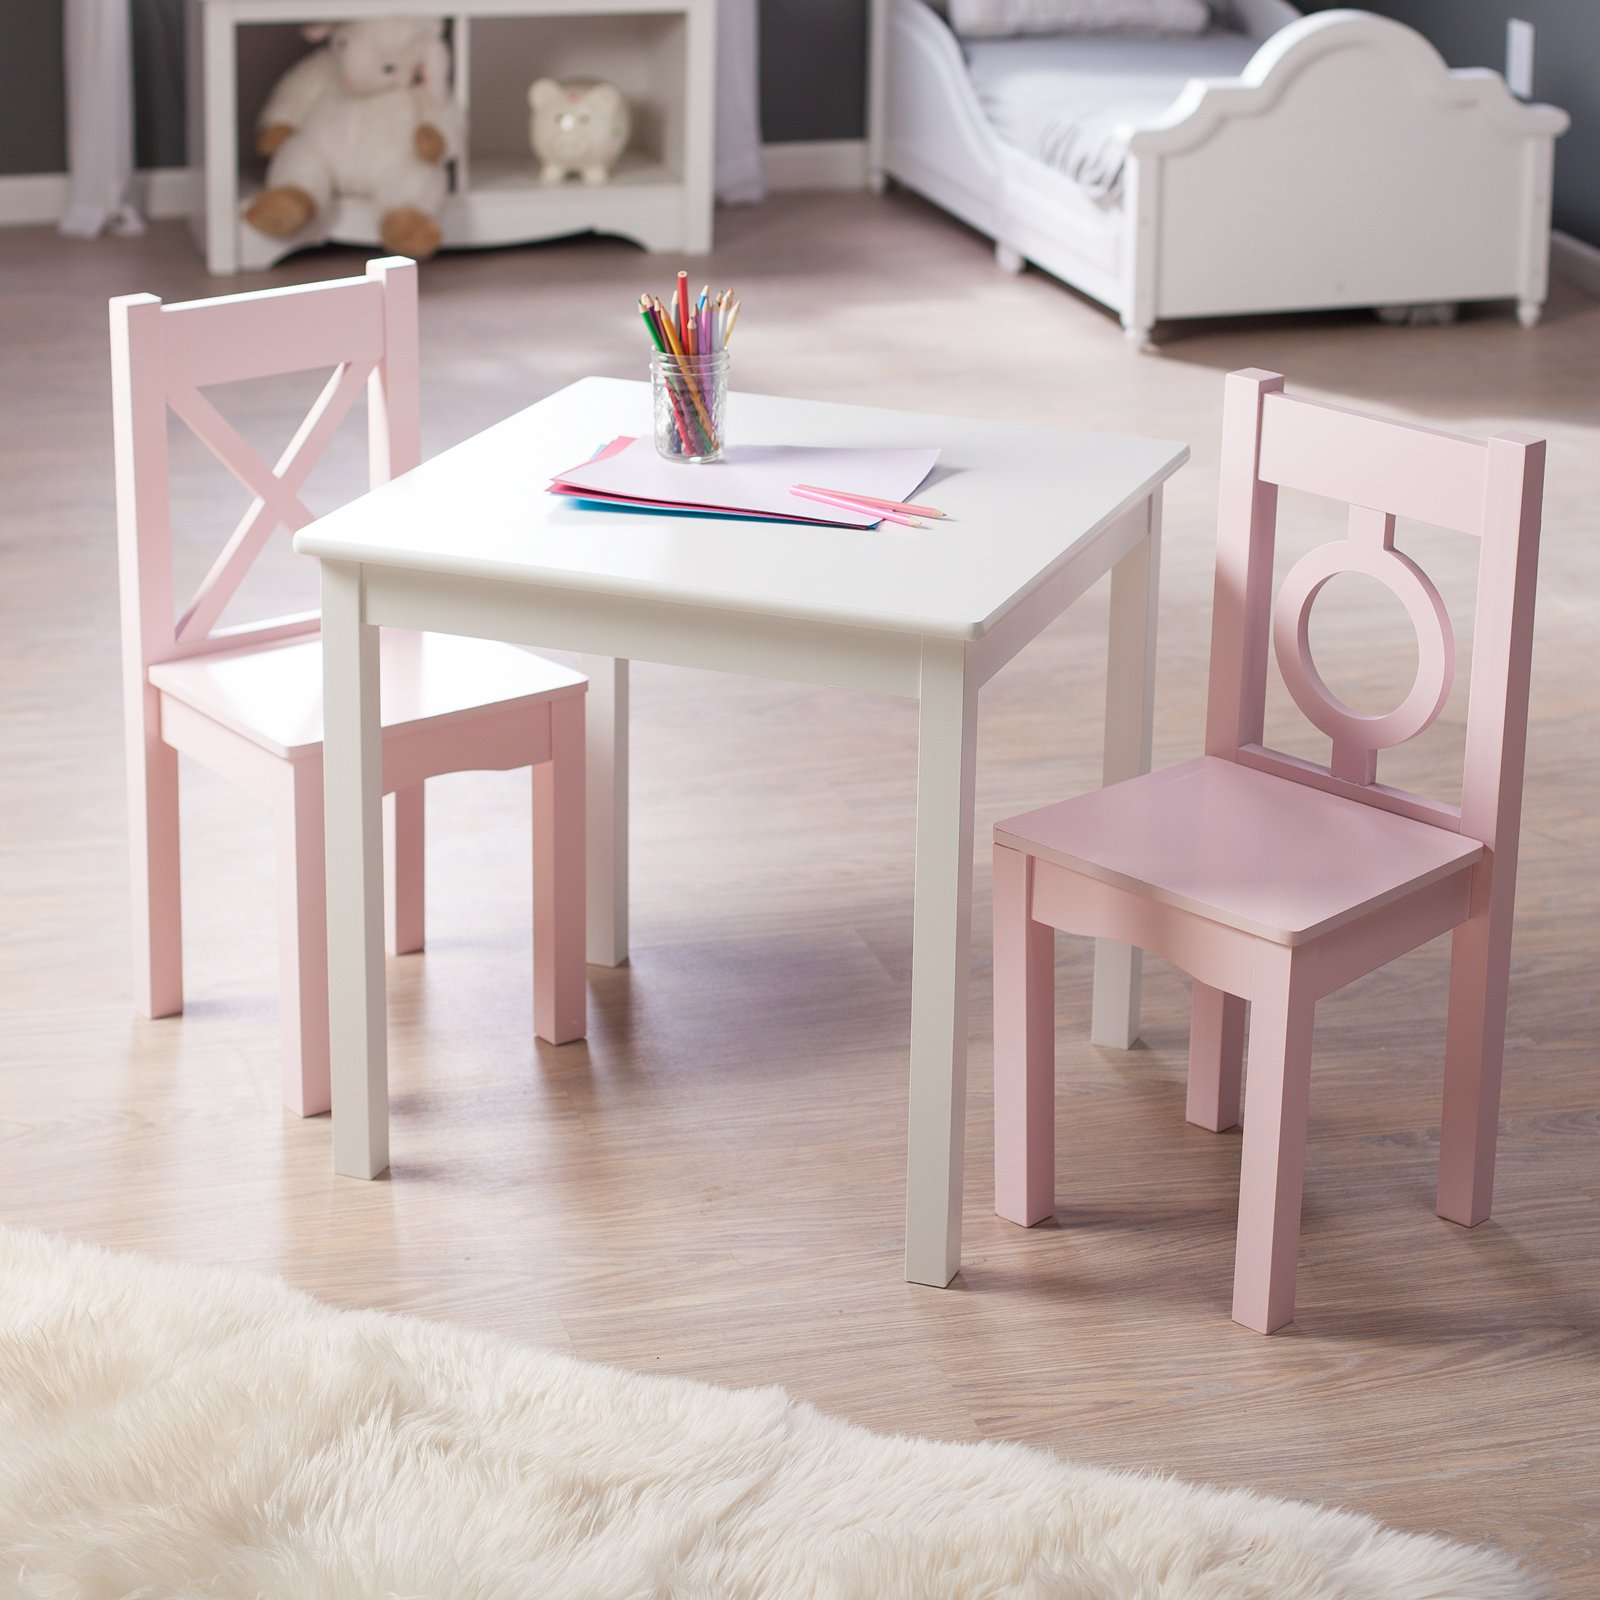 Lipper Hugs and Kisses Table and 2 Chair Set - White u0026&; ... & Lipper Hugs and Kisses Table and 2 Chair Set - White u0026amp; Pink ...